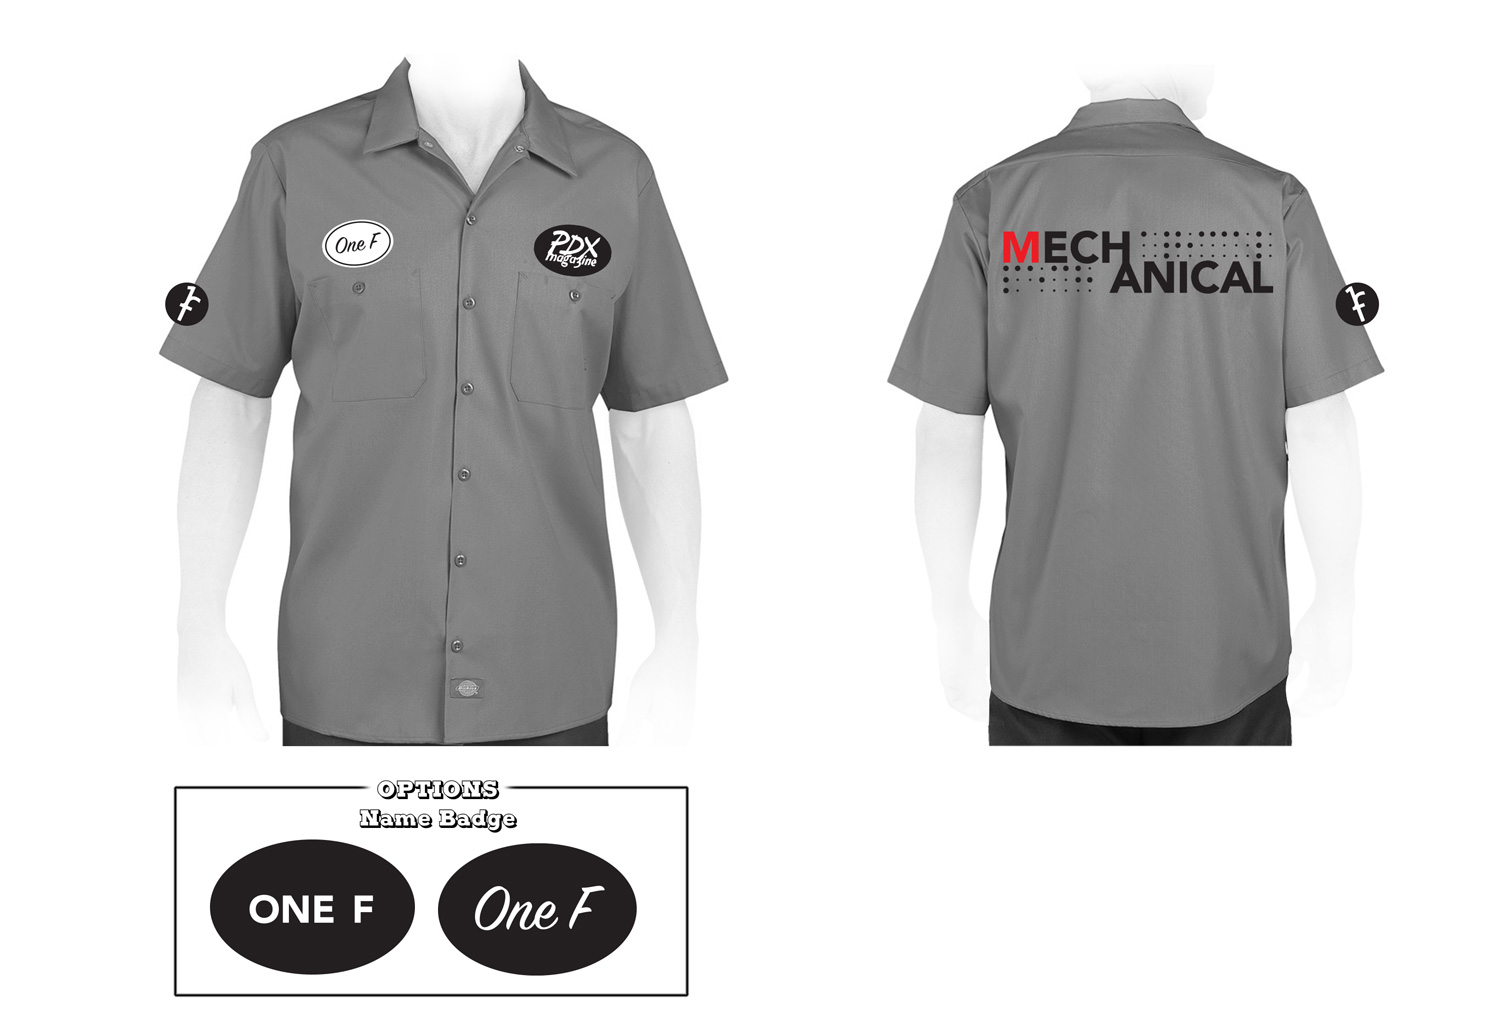 Mechanical Work Shirts -  Design based on direction from a fellow Mechanicalite. Name badges were specific for each person, however the graphics layout stayed the same on all shirts.